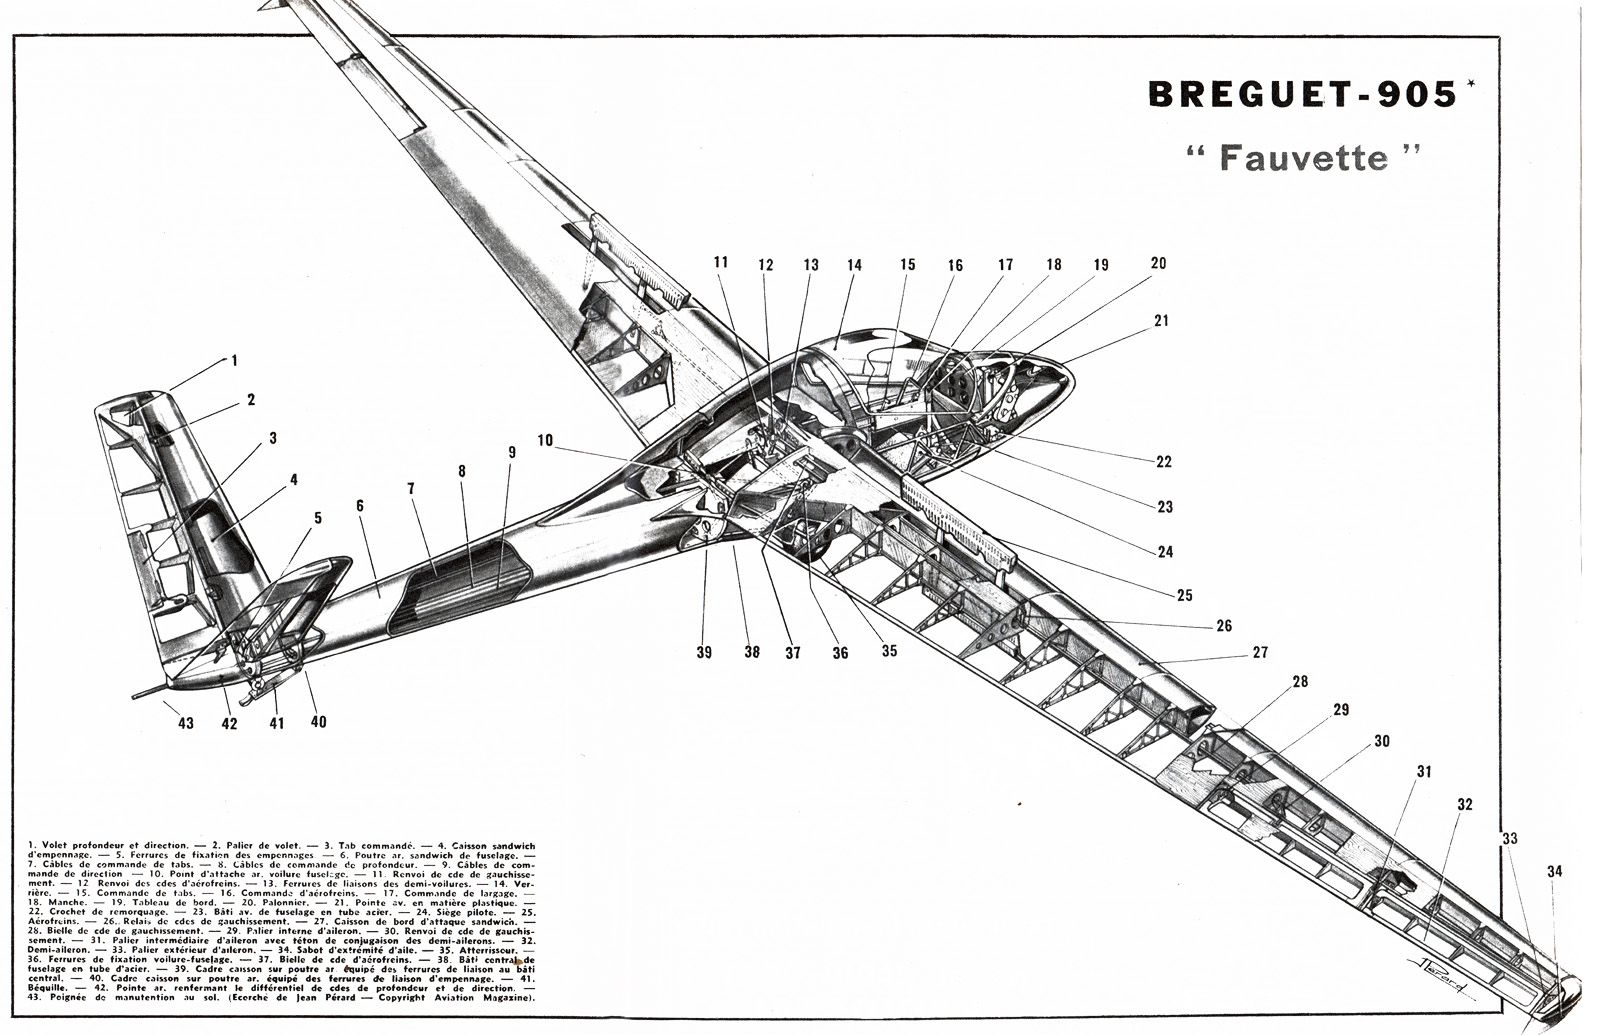 Feast Your Eyes On These Rare Aircraft Cutaway Drawings